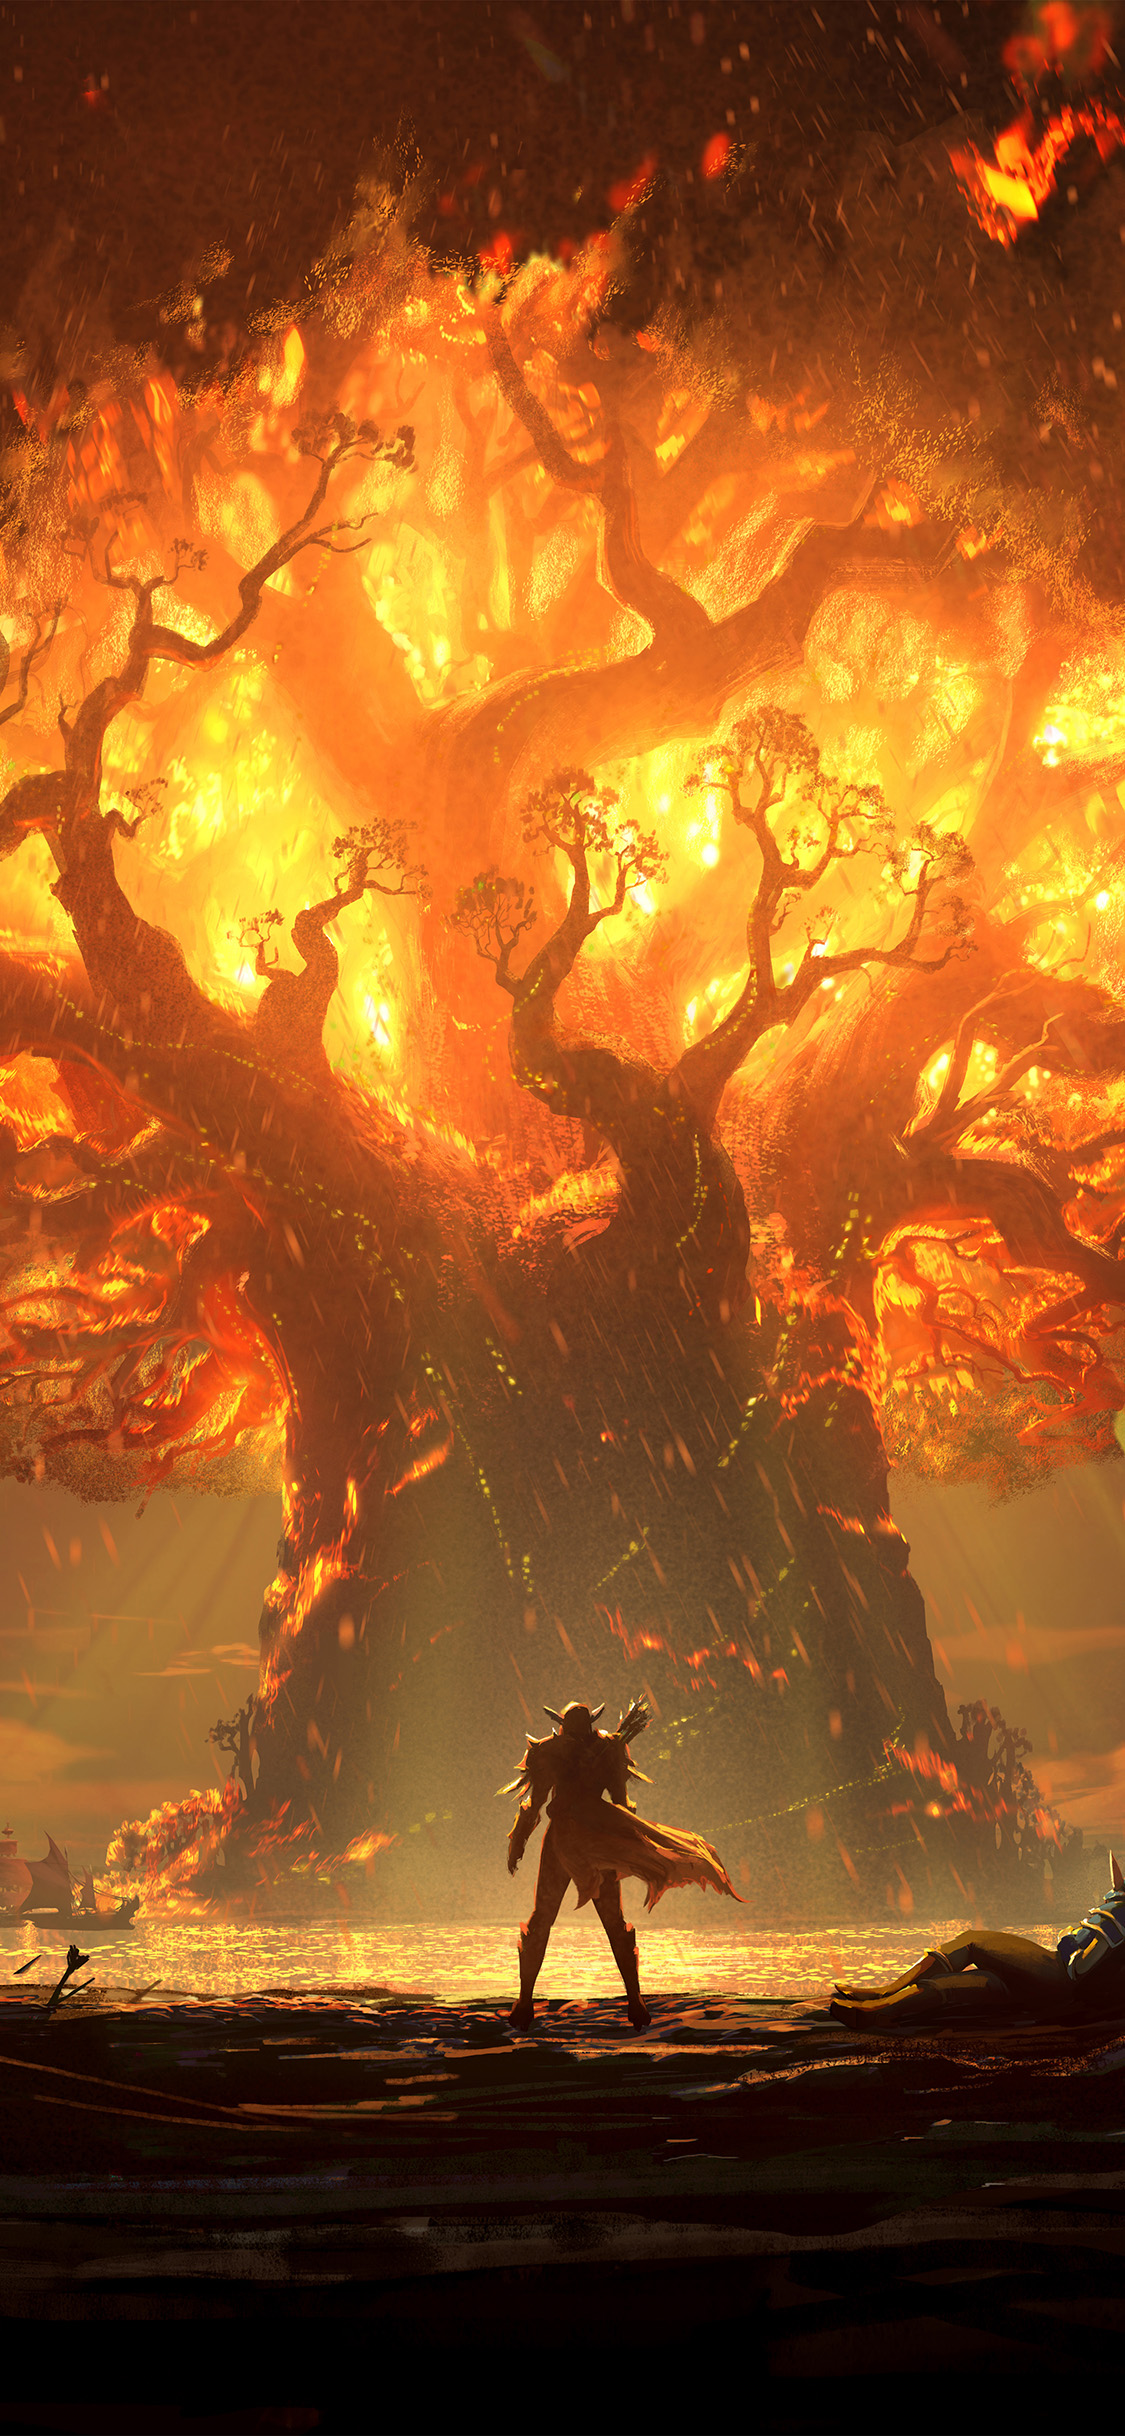 Vy38 Tree Anime Hero Pattern Background Cool Wallpaper Iphone X